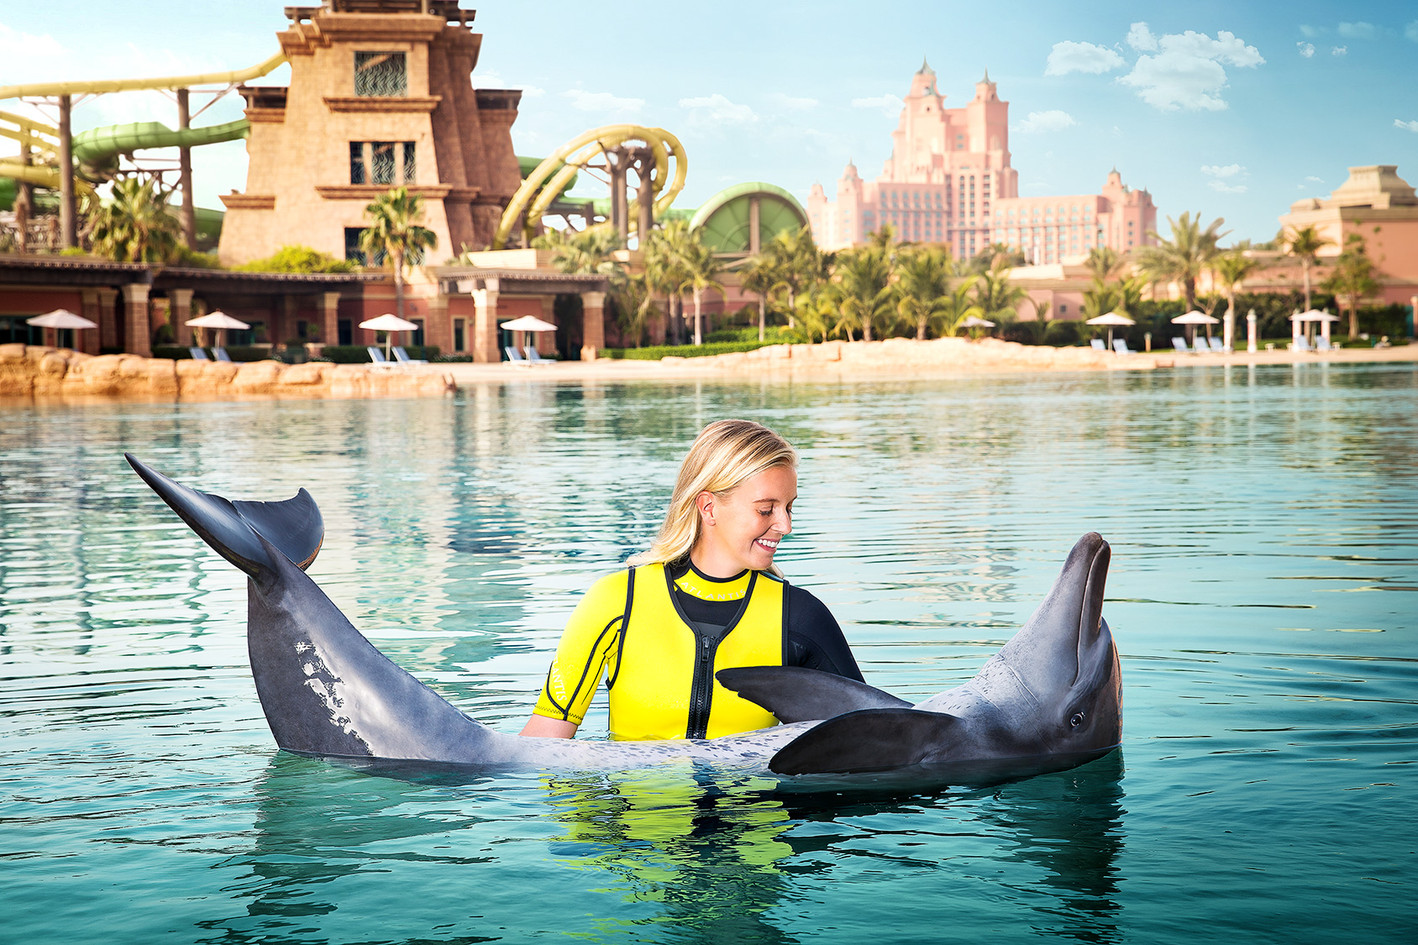 DUBAI DOLPHIN BAY Dolphin encounters & diving in a lagoon